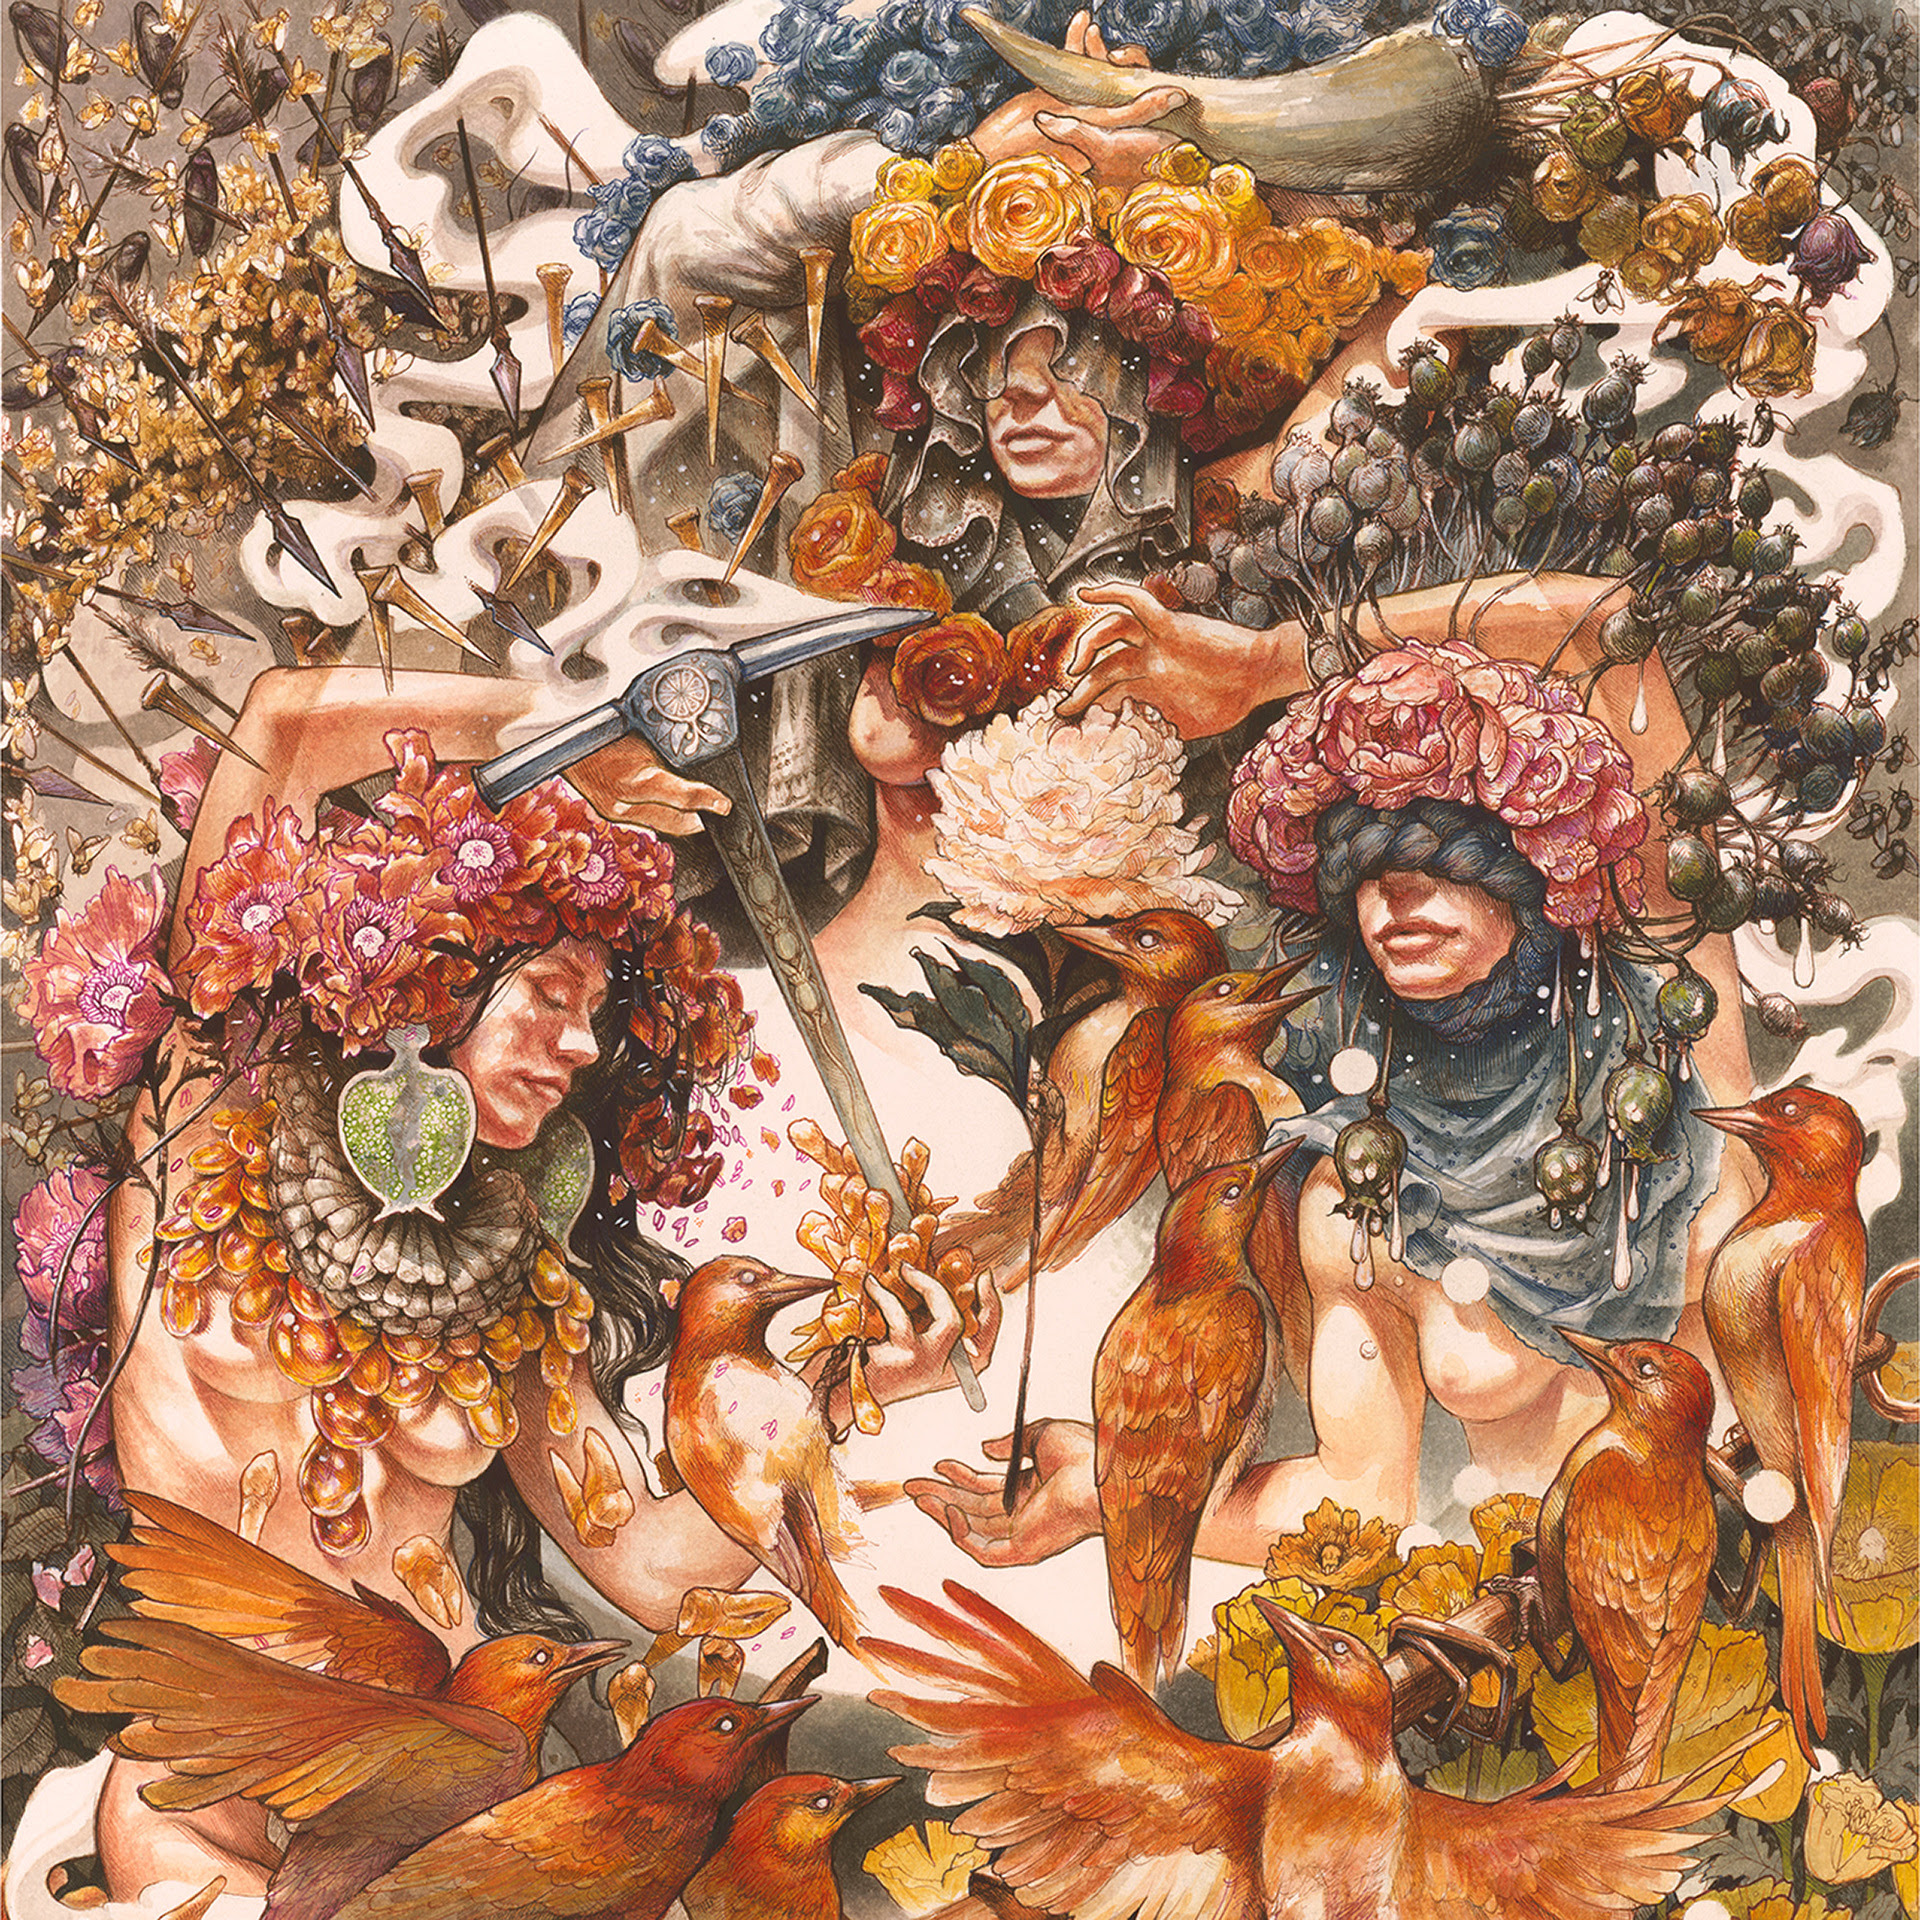 Baroness - Gold and Grey  Release Date: 6/14/19 Devices Used:  Rainbow Machine  /  Hoof Reaper  /  Dispatch Master  /  Avalanche Run  /  Afterneath  /  Data Corrupter  /  Bit Commander  /  Disaster Transport SR  /  Spires  /  Space Spiral